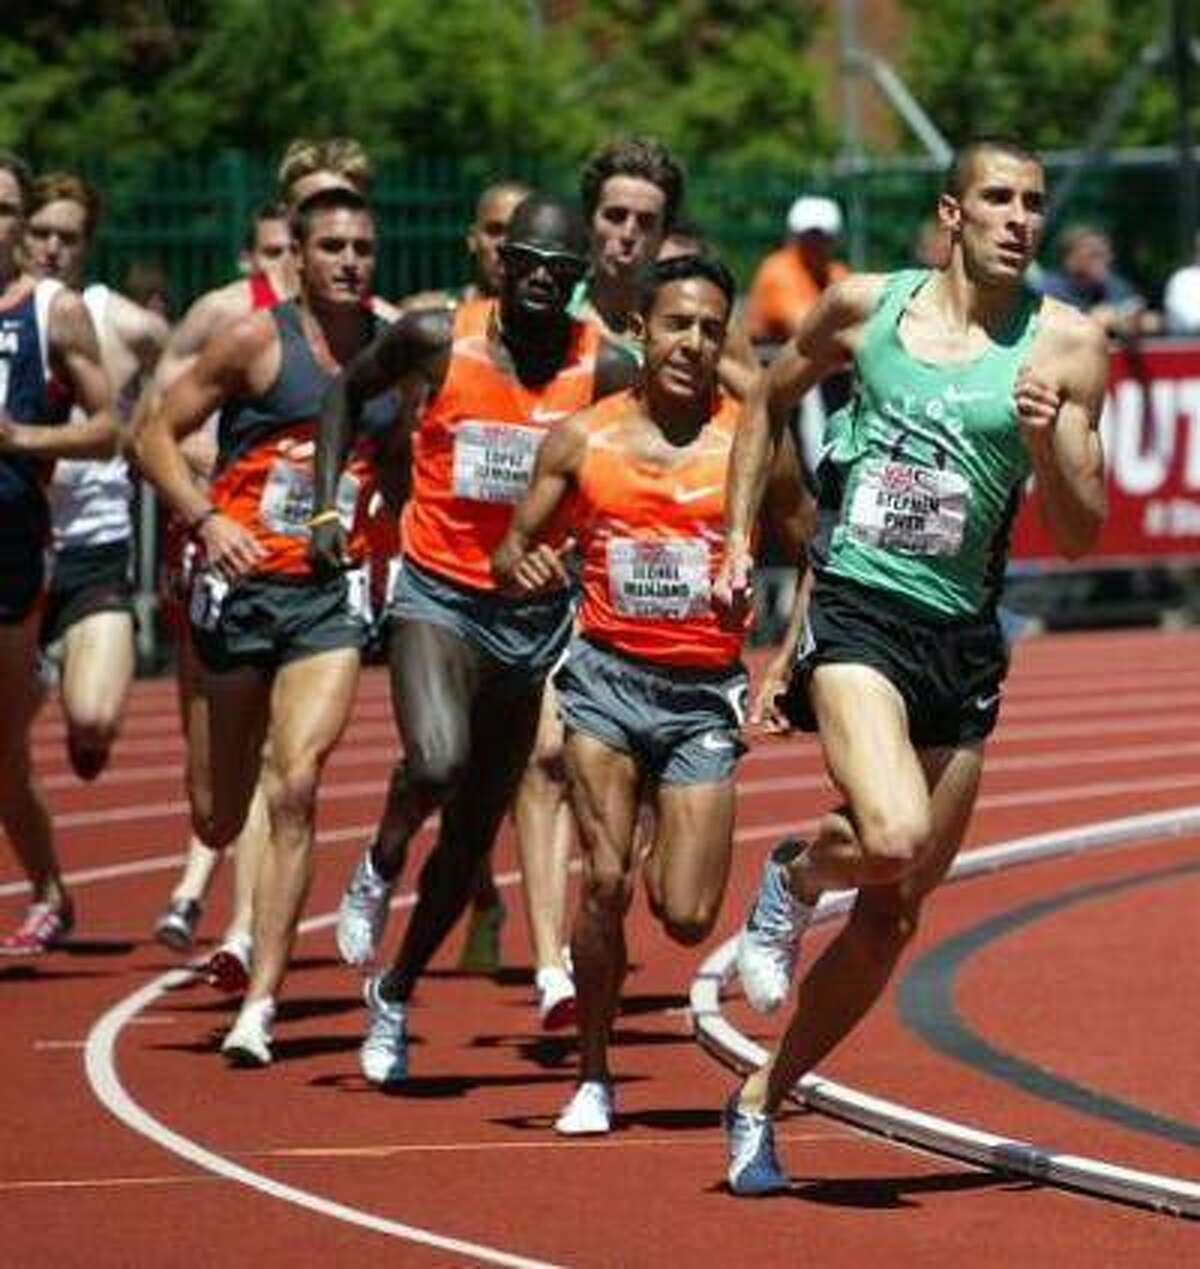 Former Edwardsville High School standout Stephen Pifer, right, competes in the 1,500-meter run at the USA Outdoor Championships in 2009.